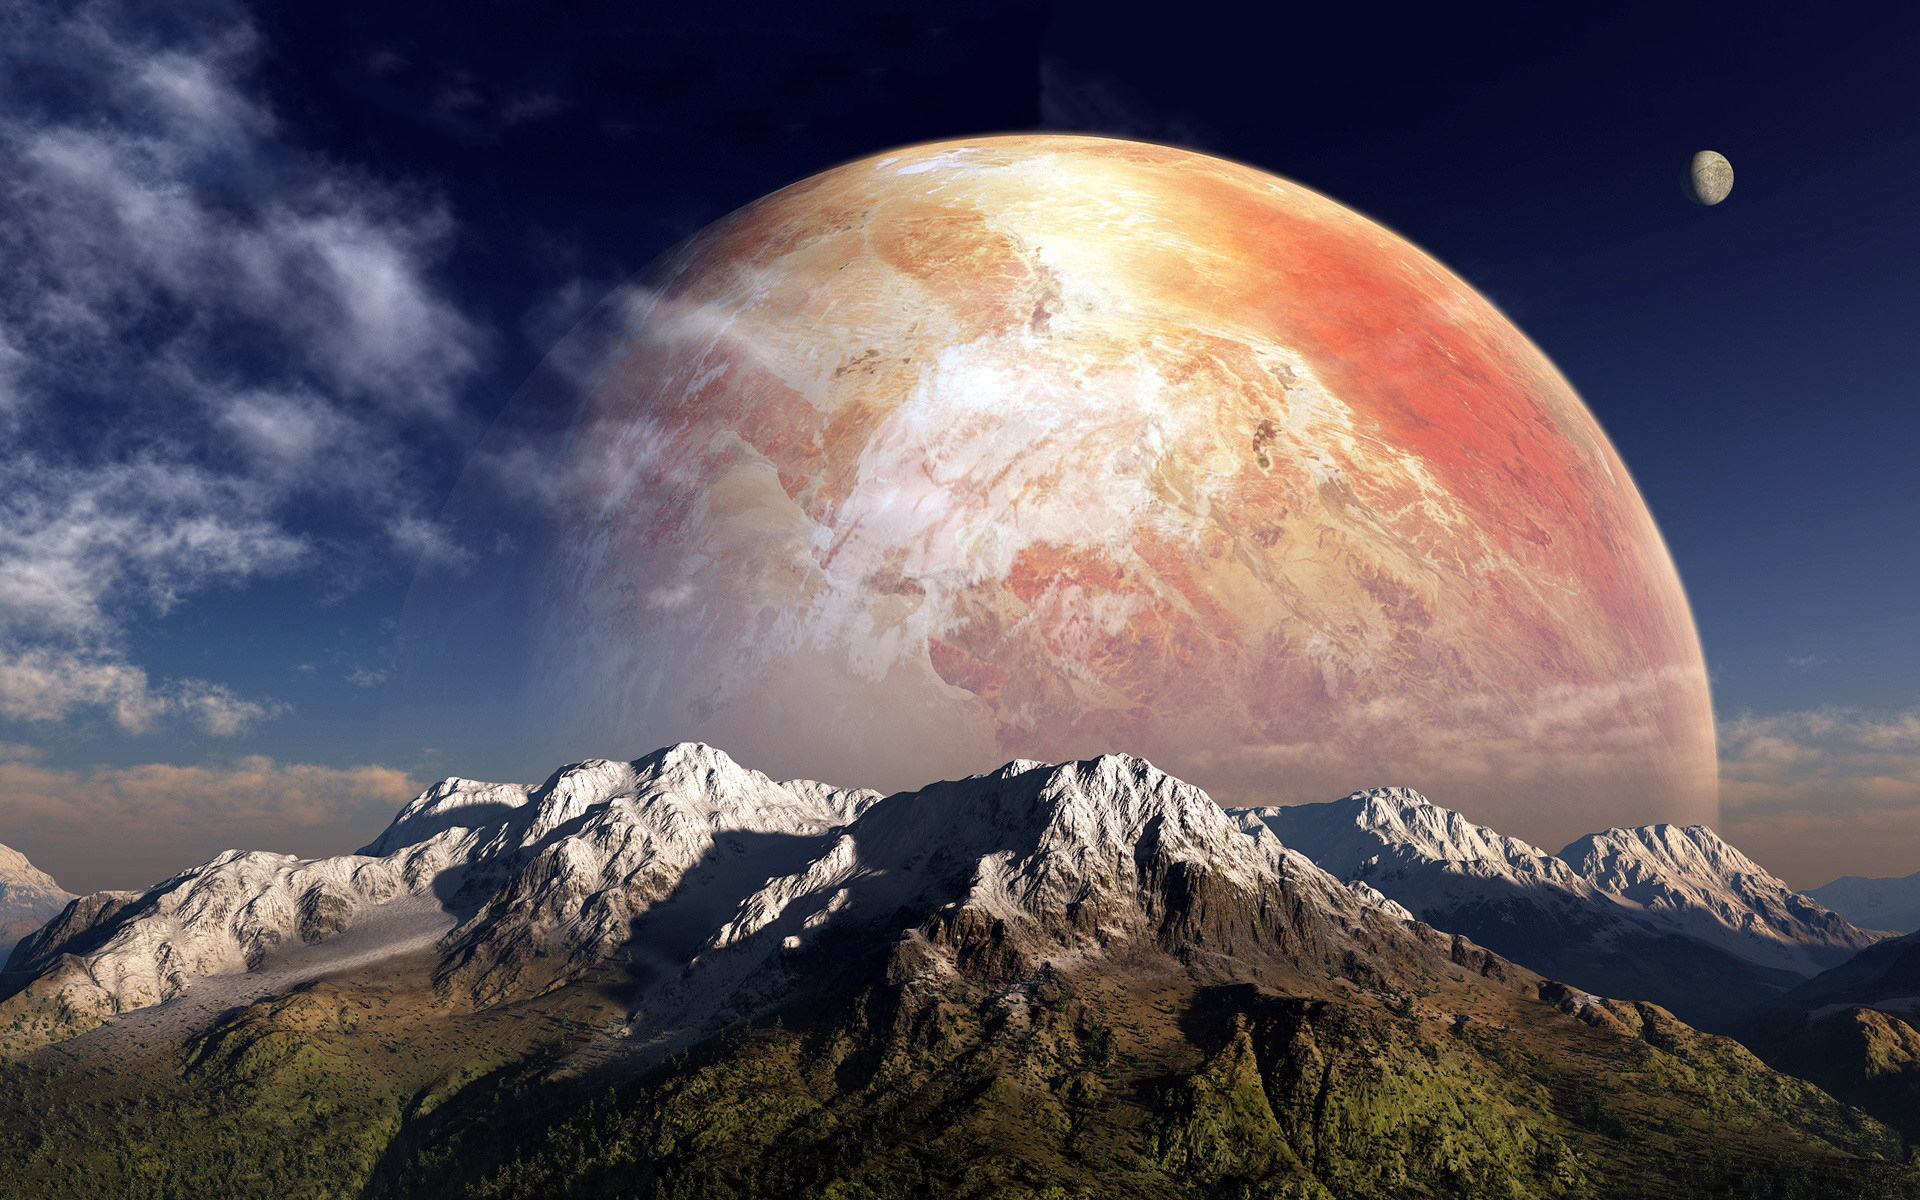 Fantasy planet mountains